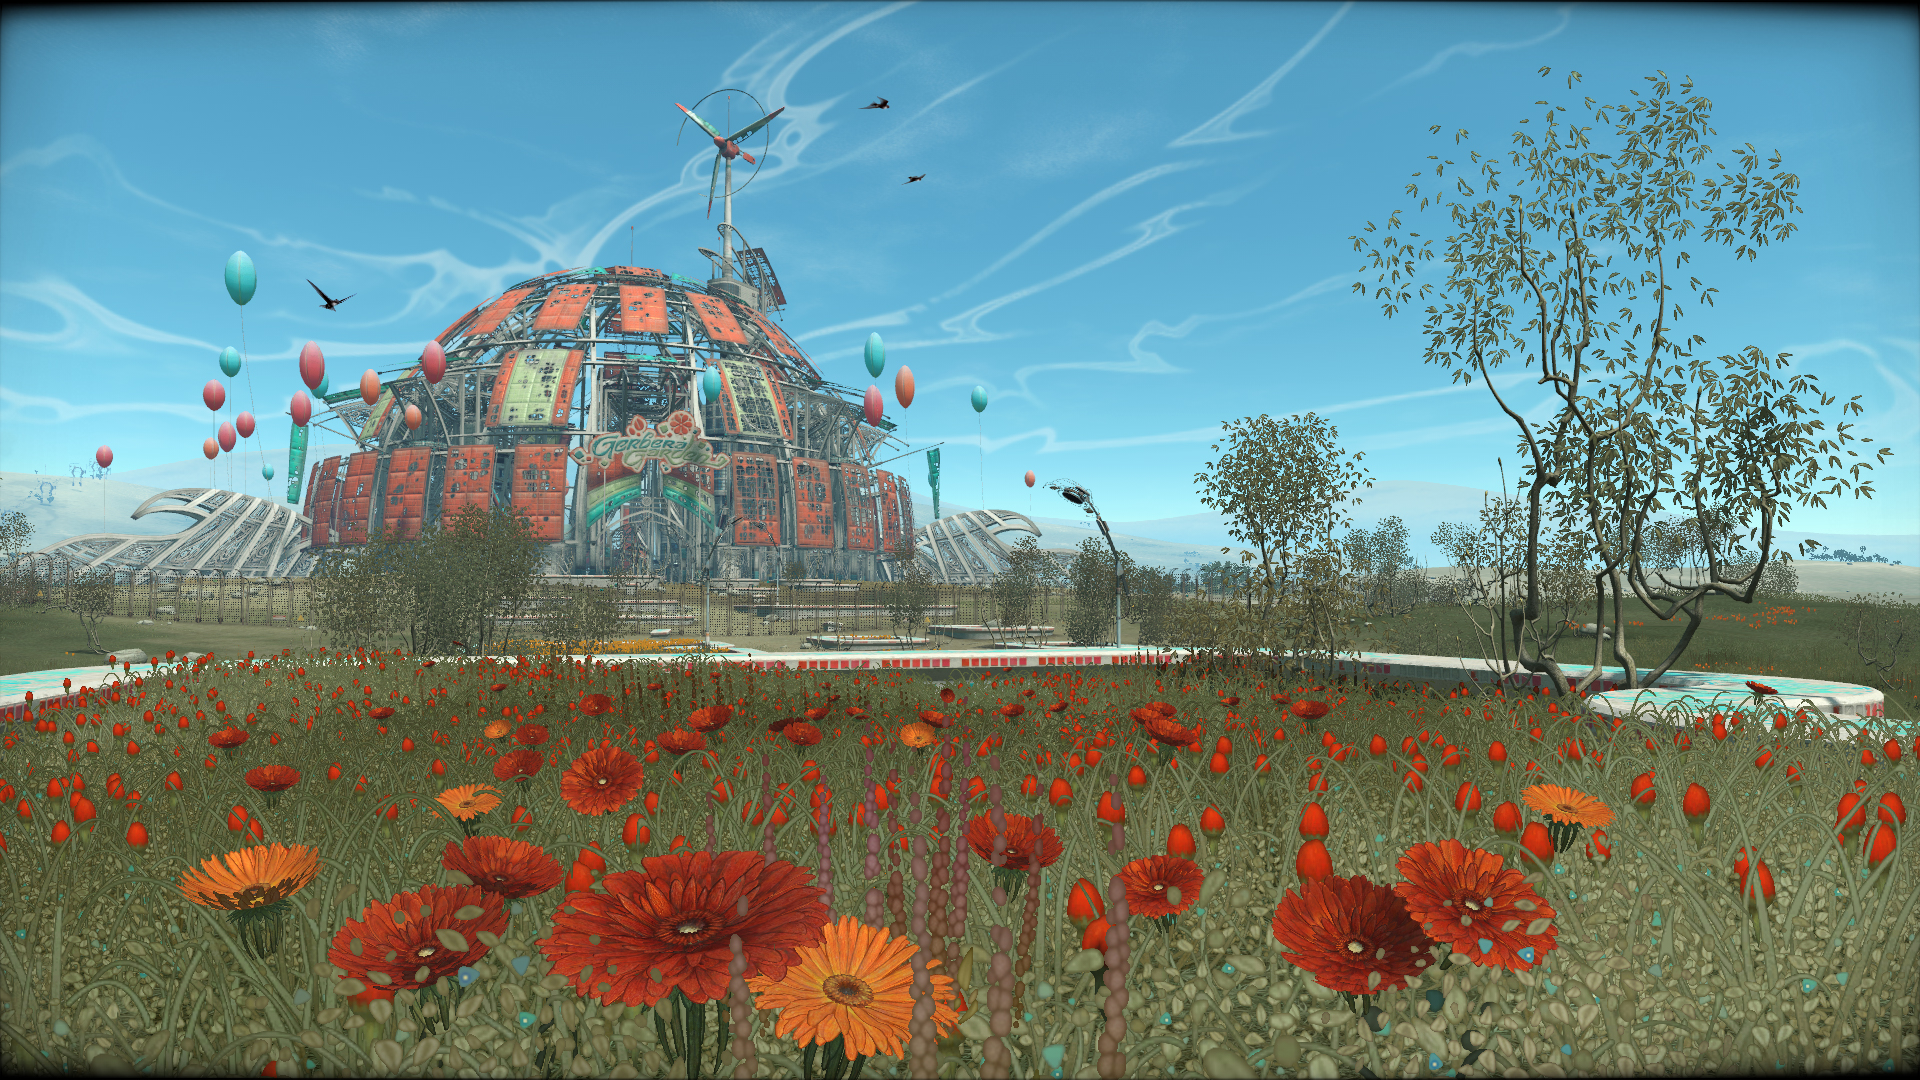 Flowerbed with a large ruined dome in the background